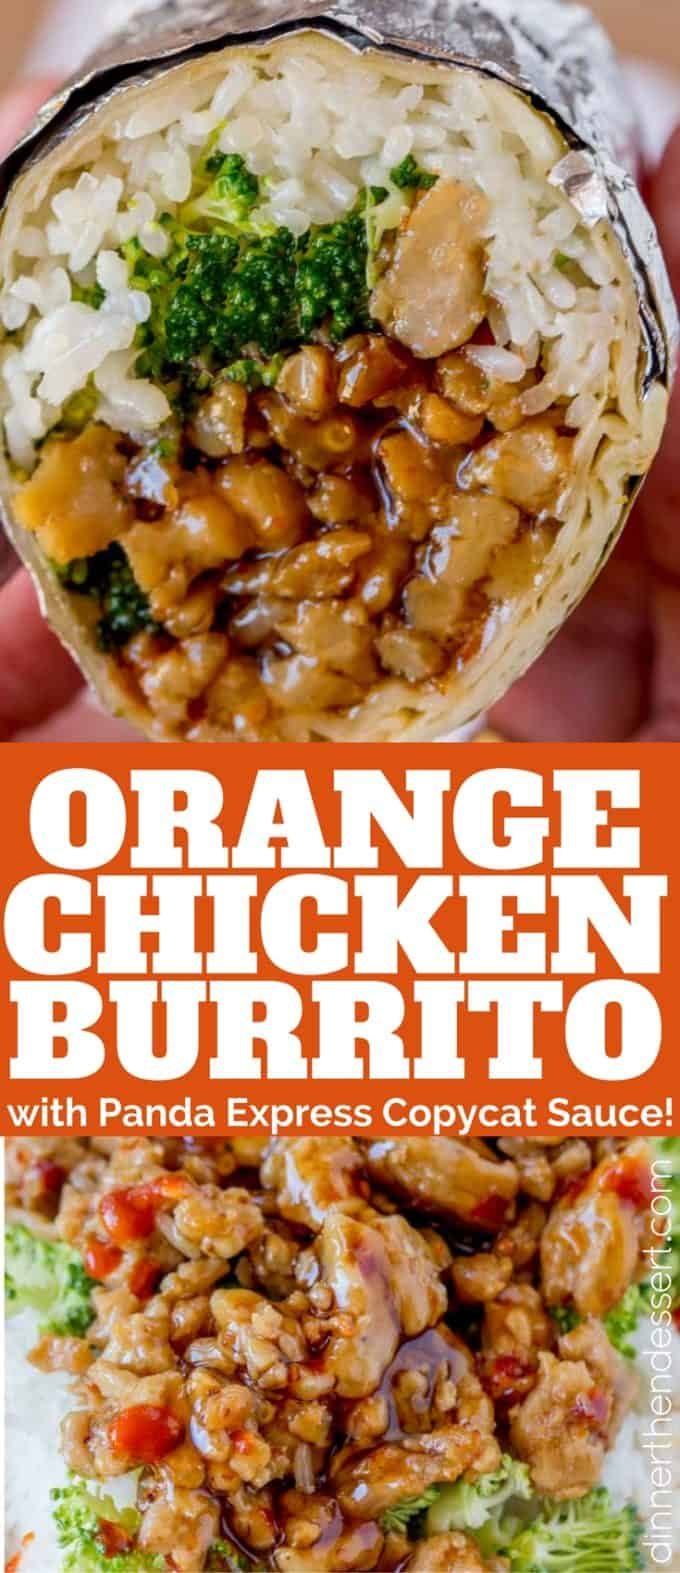 We loved this Orange Chicken Burrito so much we made it twice in one week!